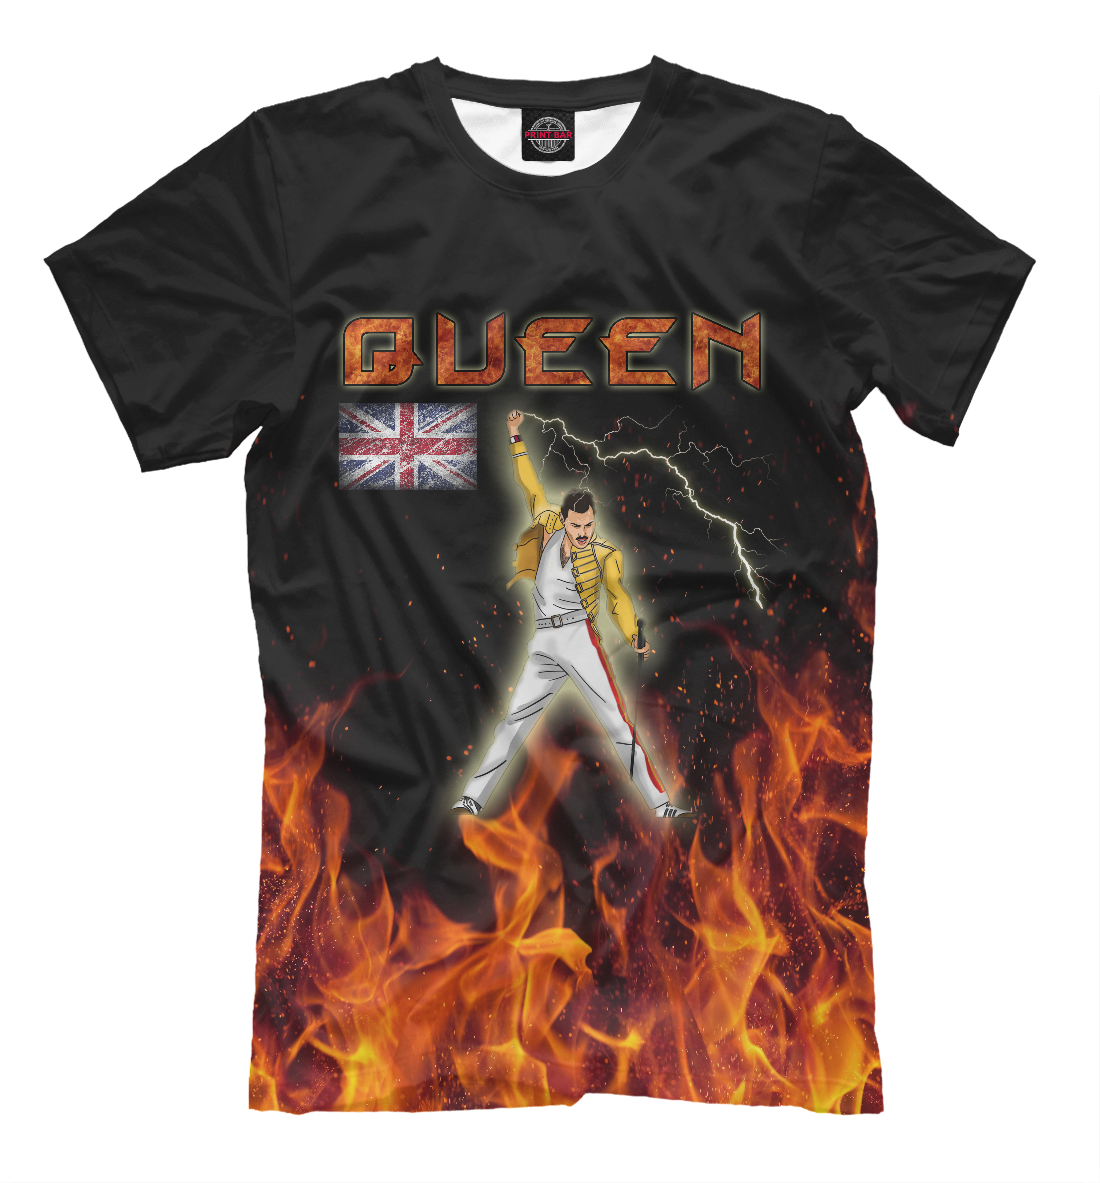 Купить Queen & Freddie Mercury, Printbar, Футболки, QUE-485098-fut-2